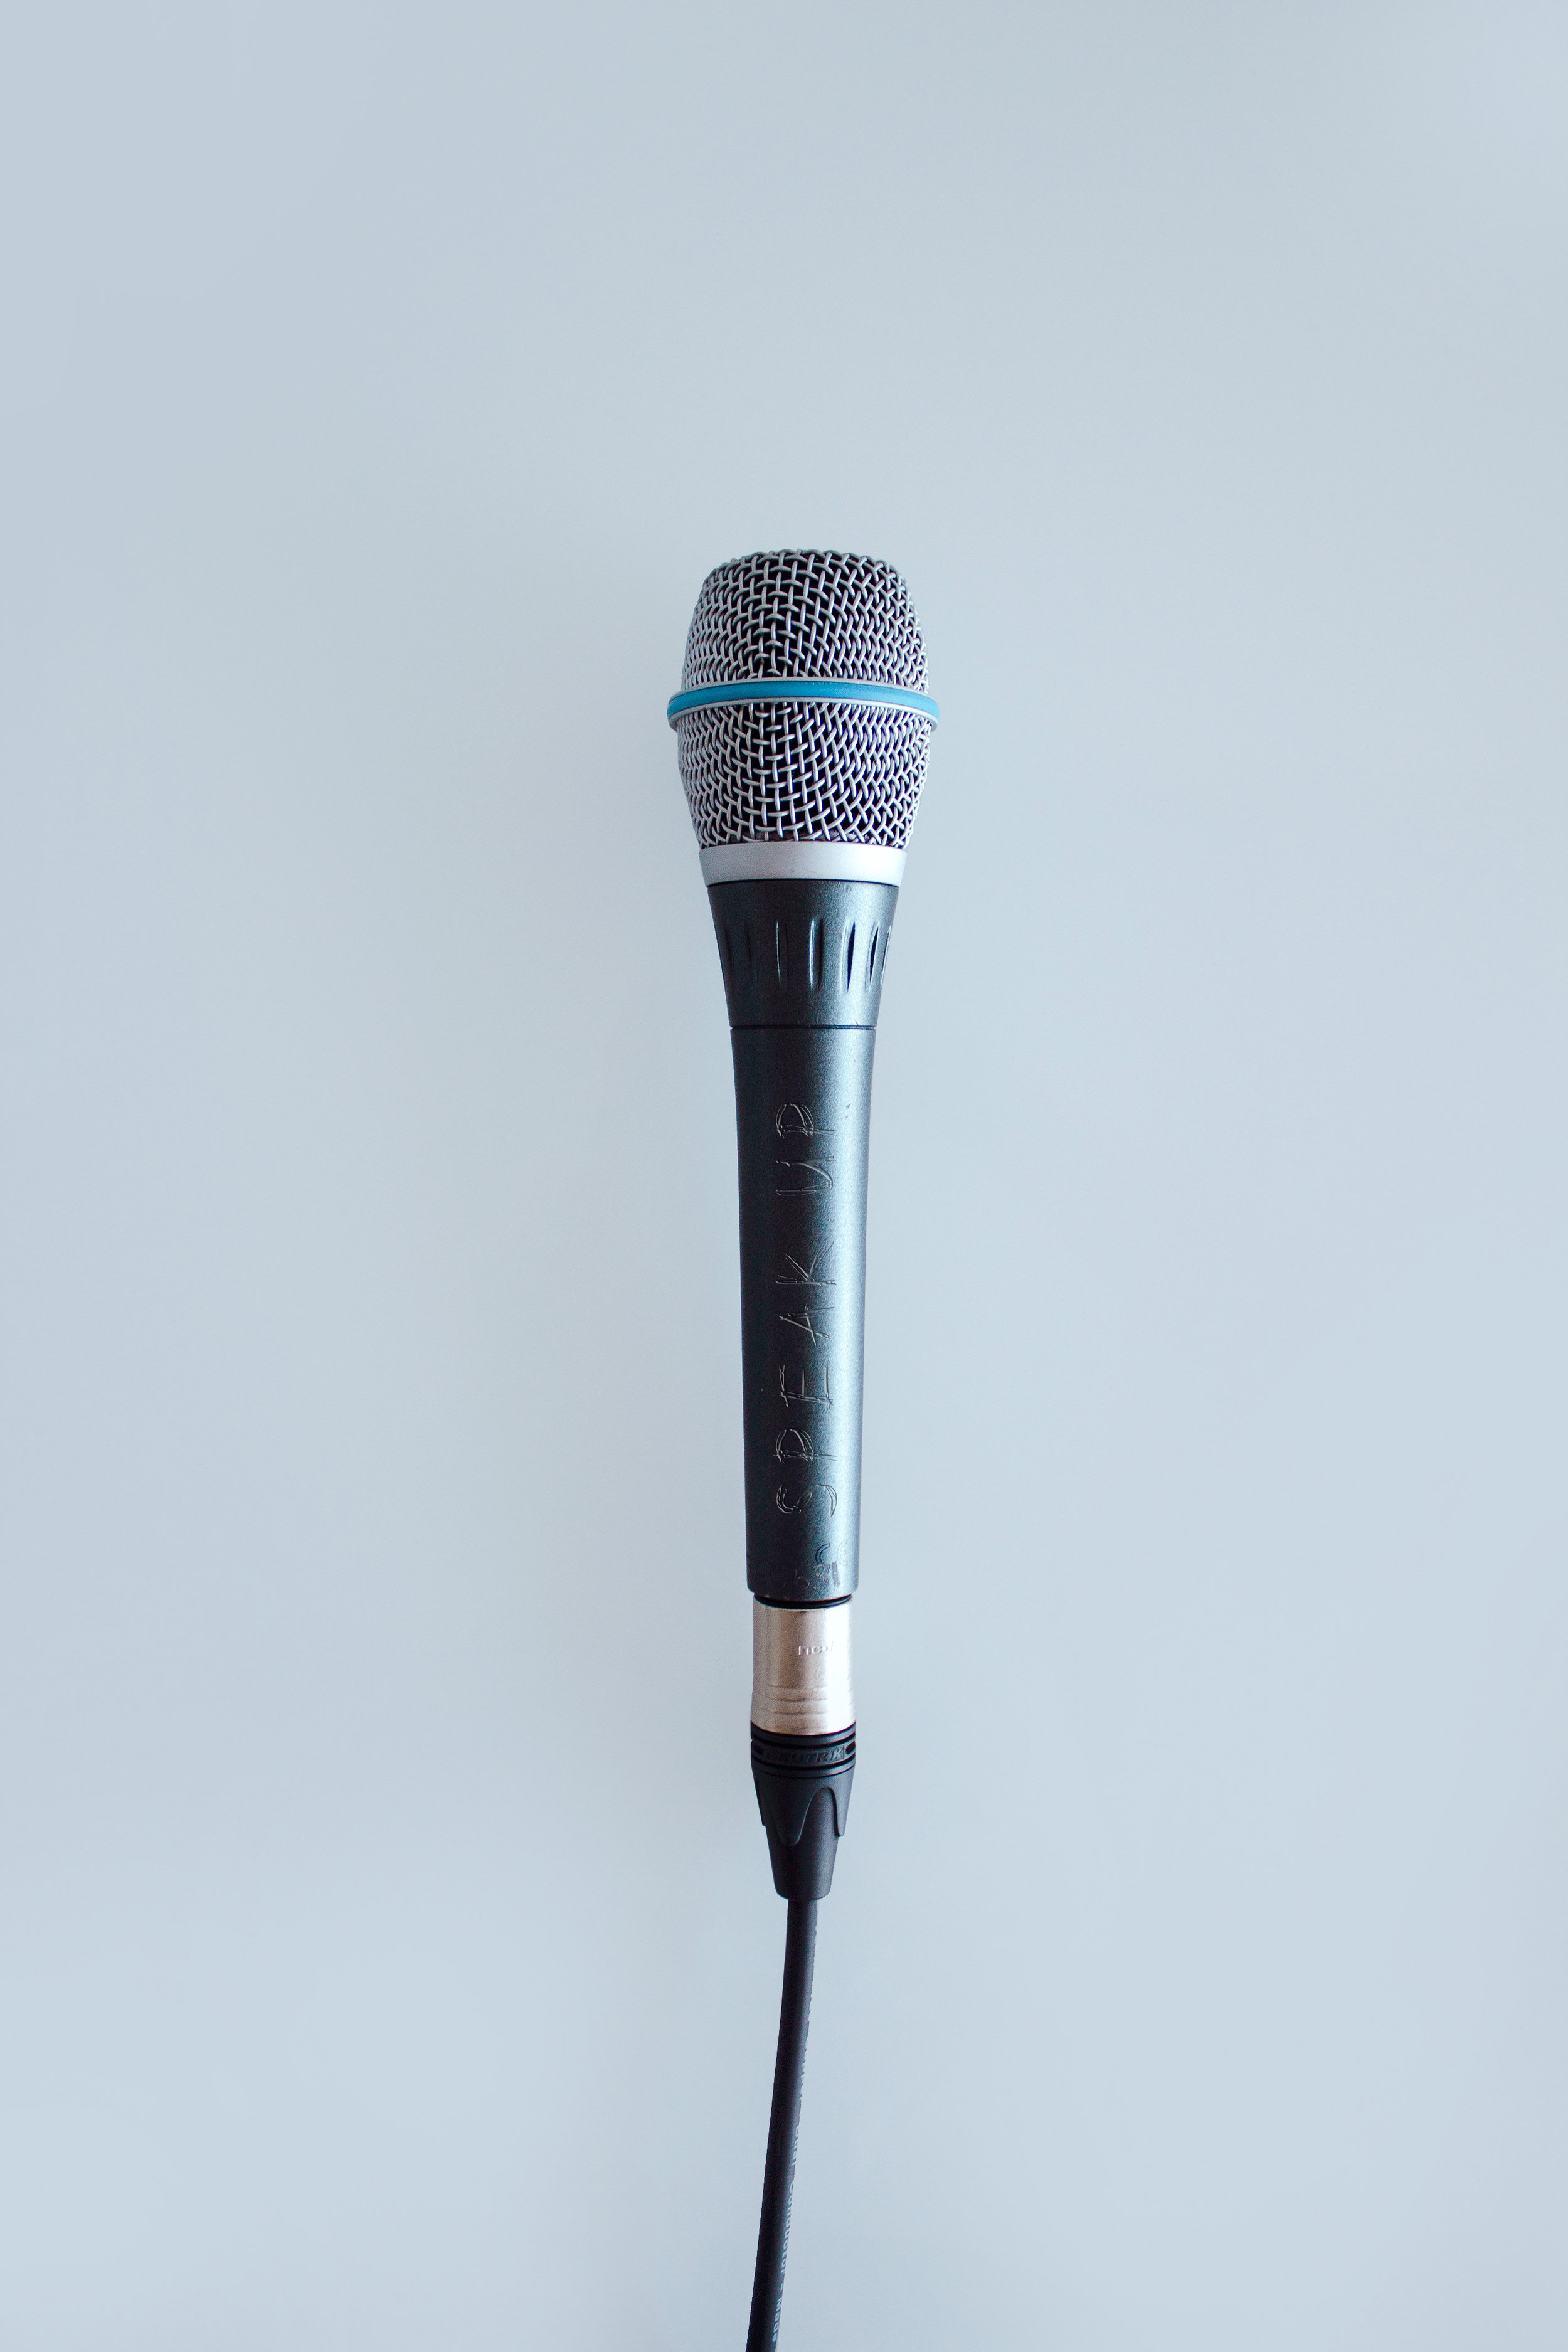 A microphone against a blue background that you can use to speak up against negative thoughts.